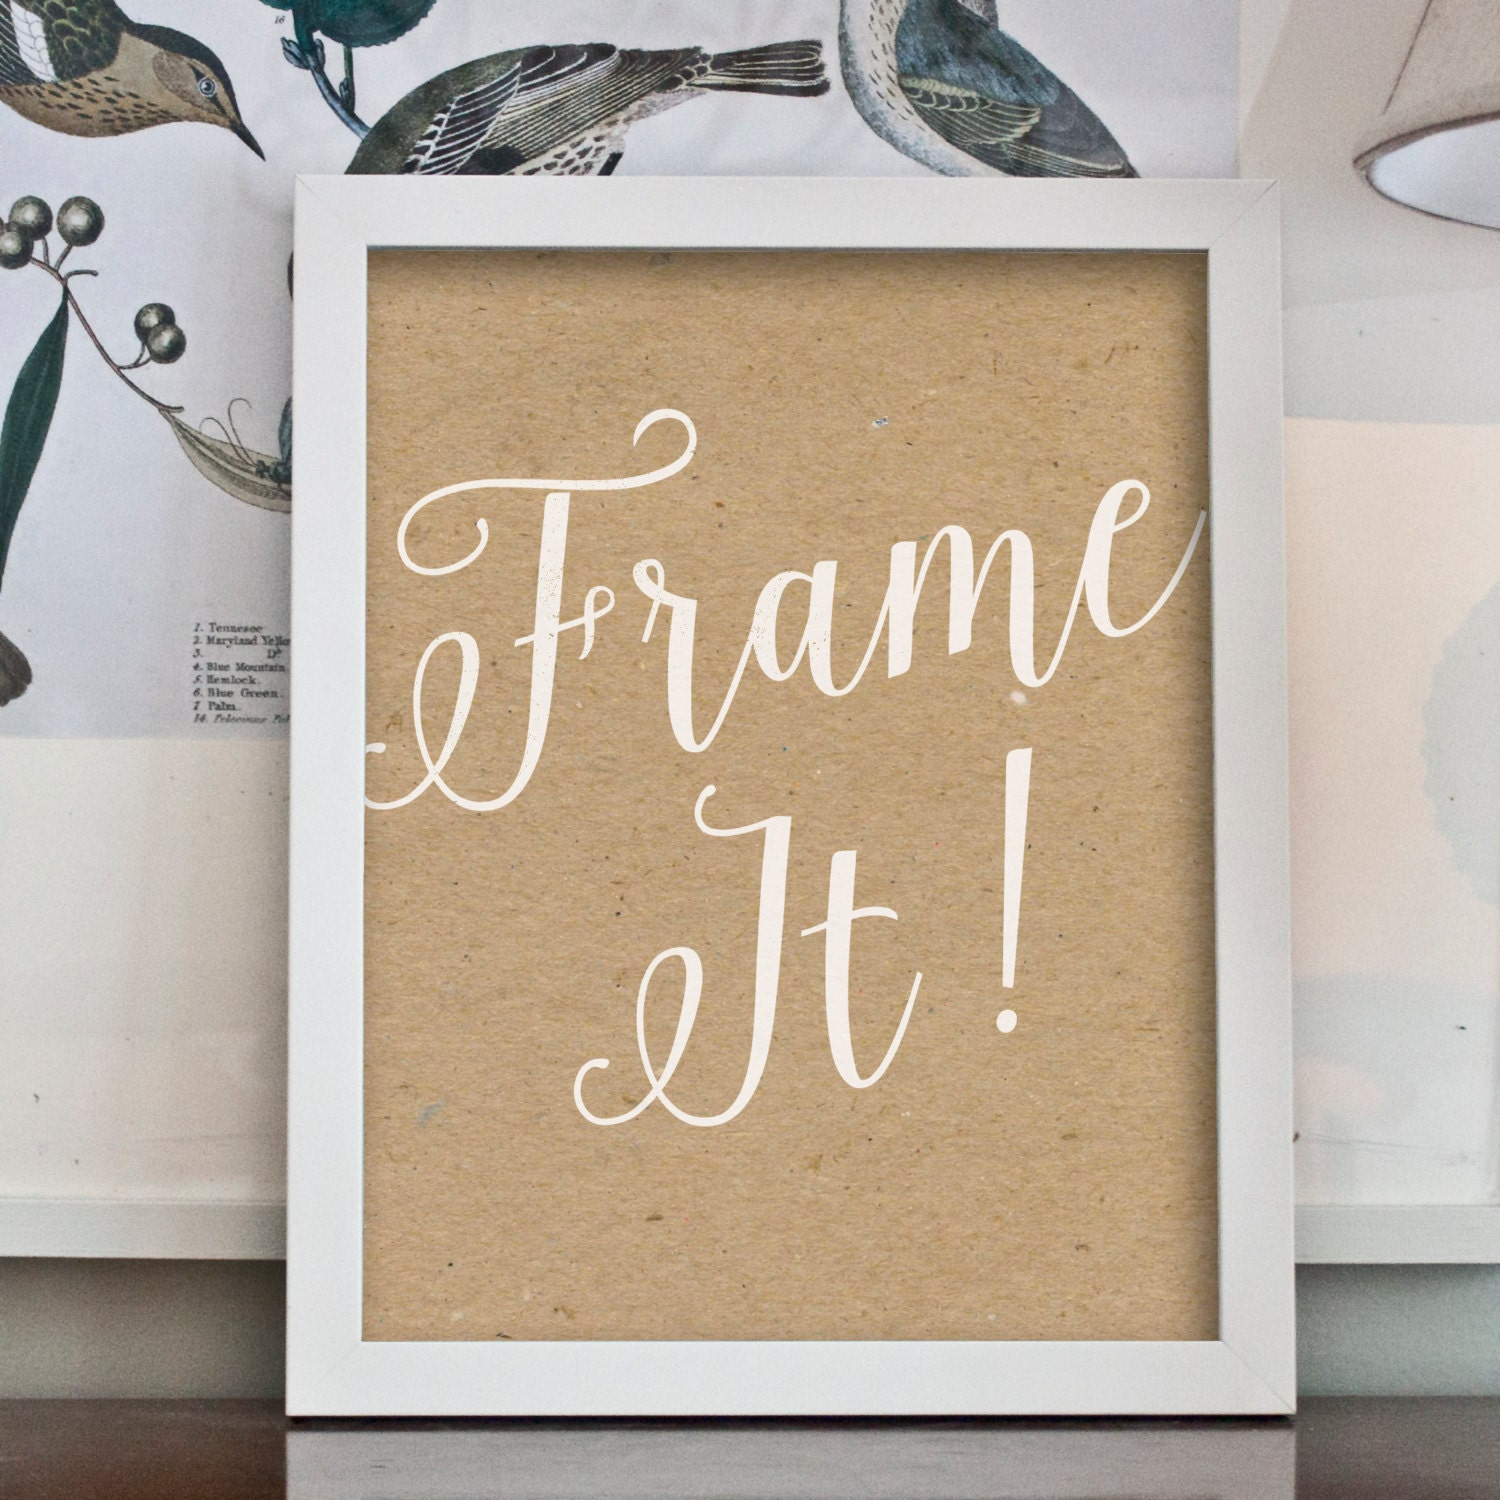 Stay Awhile print with burlap background